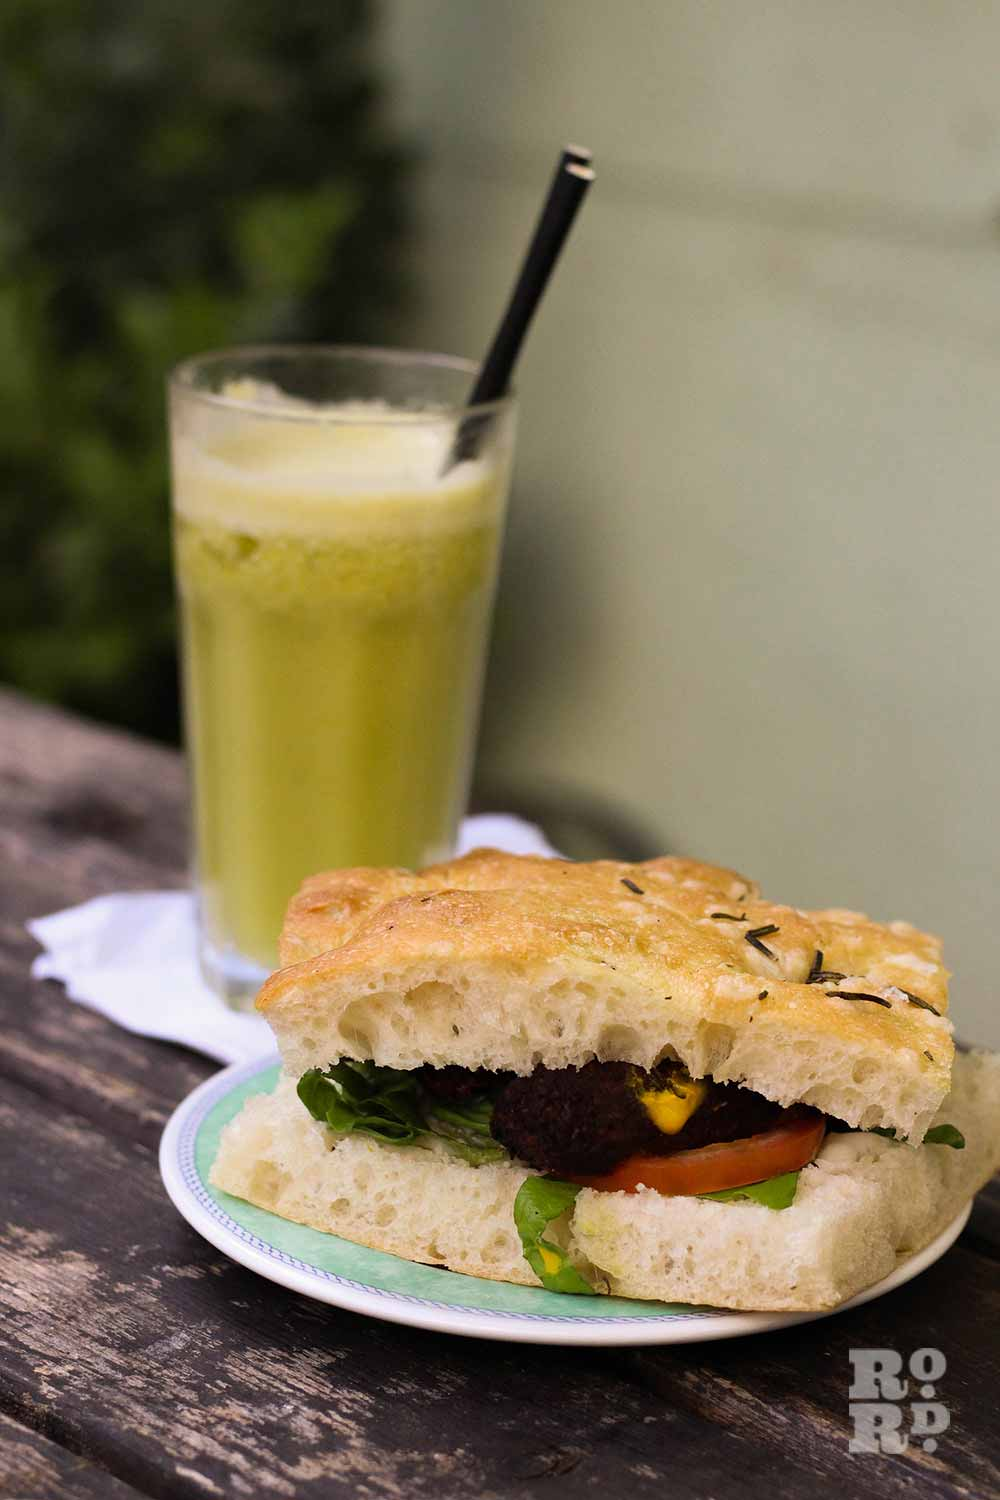 Gallery Cafe vegan focaccia sandwich and smoothie